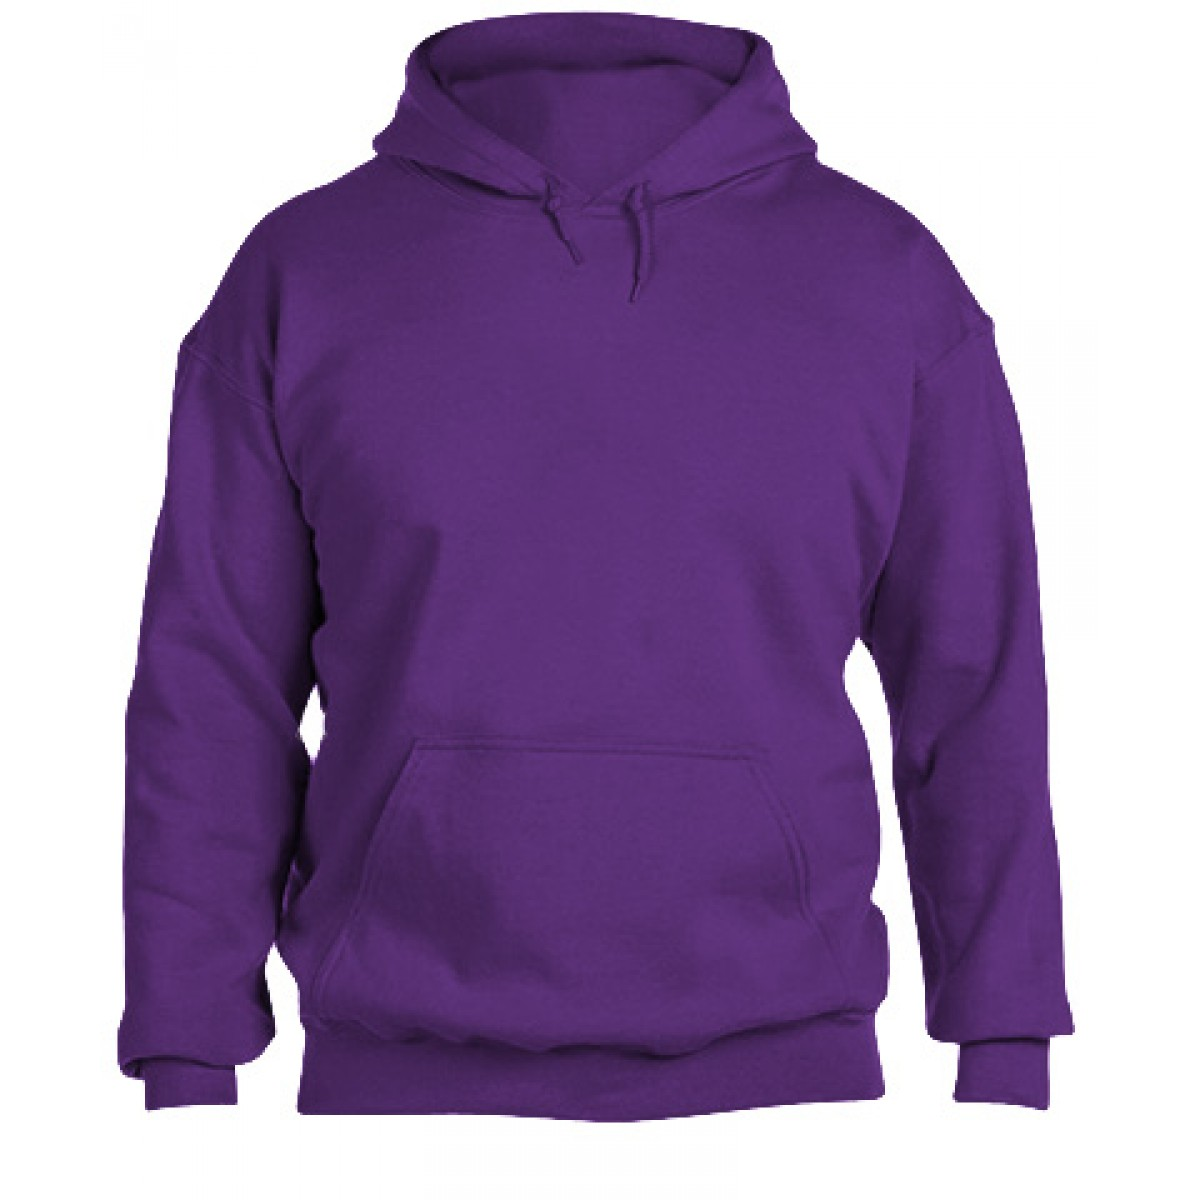 Hooded Sweatshirt 50/50 Heavy Blend -Purple-L